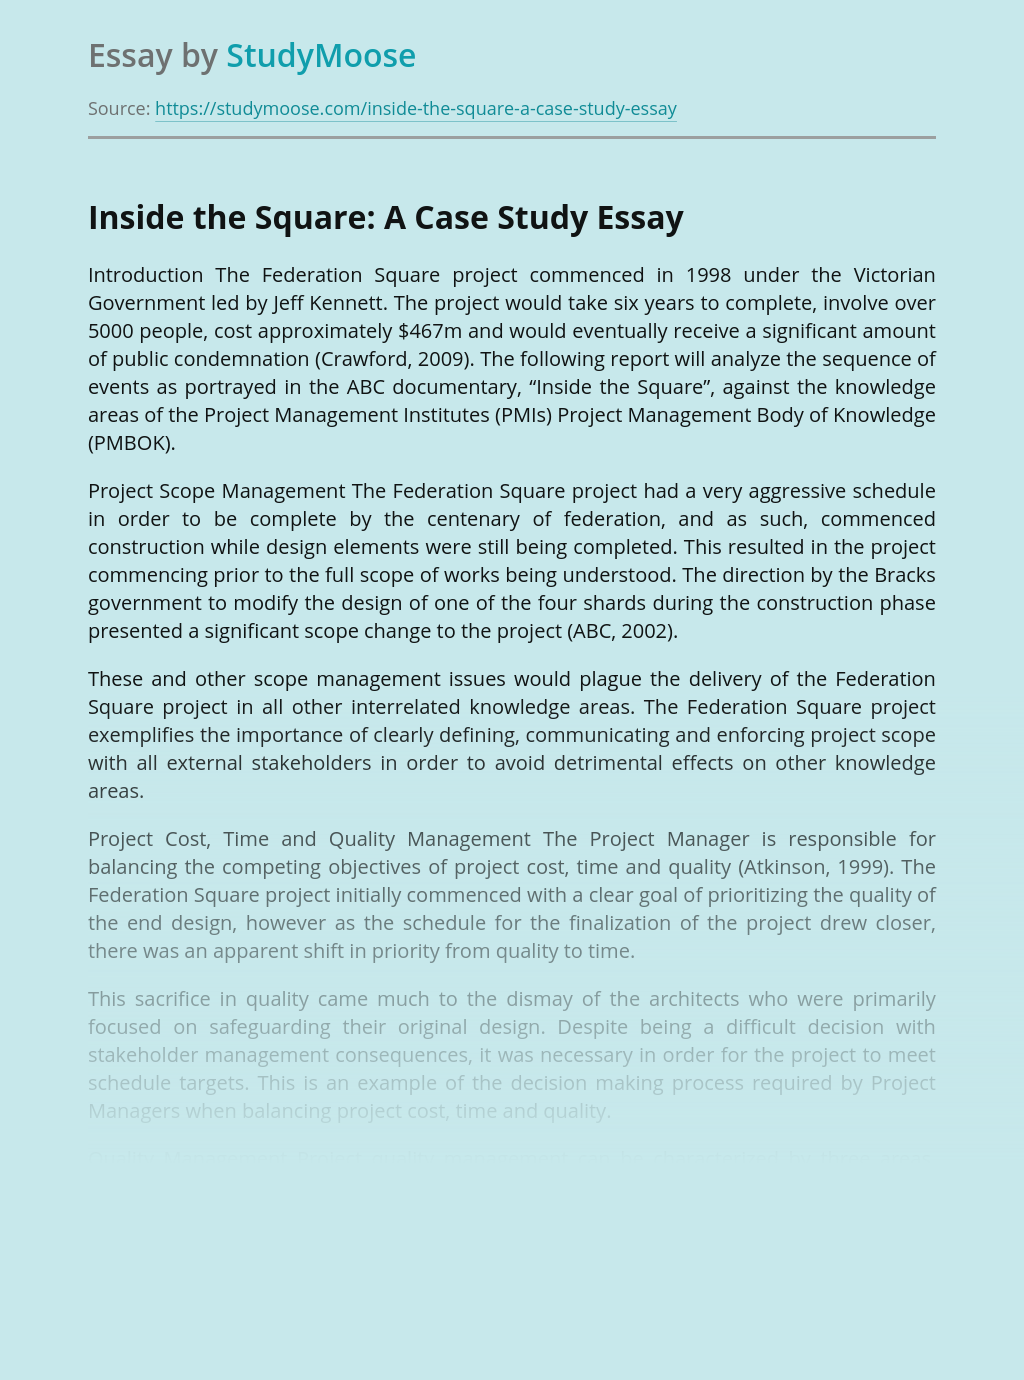 Inside the Square: A Case Study